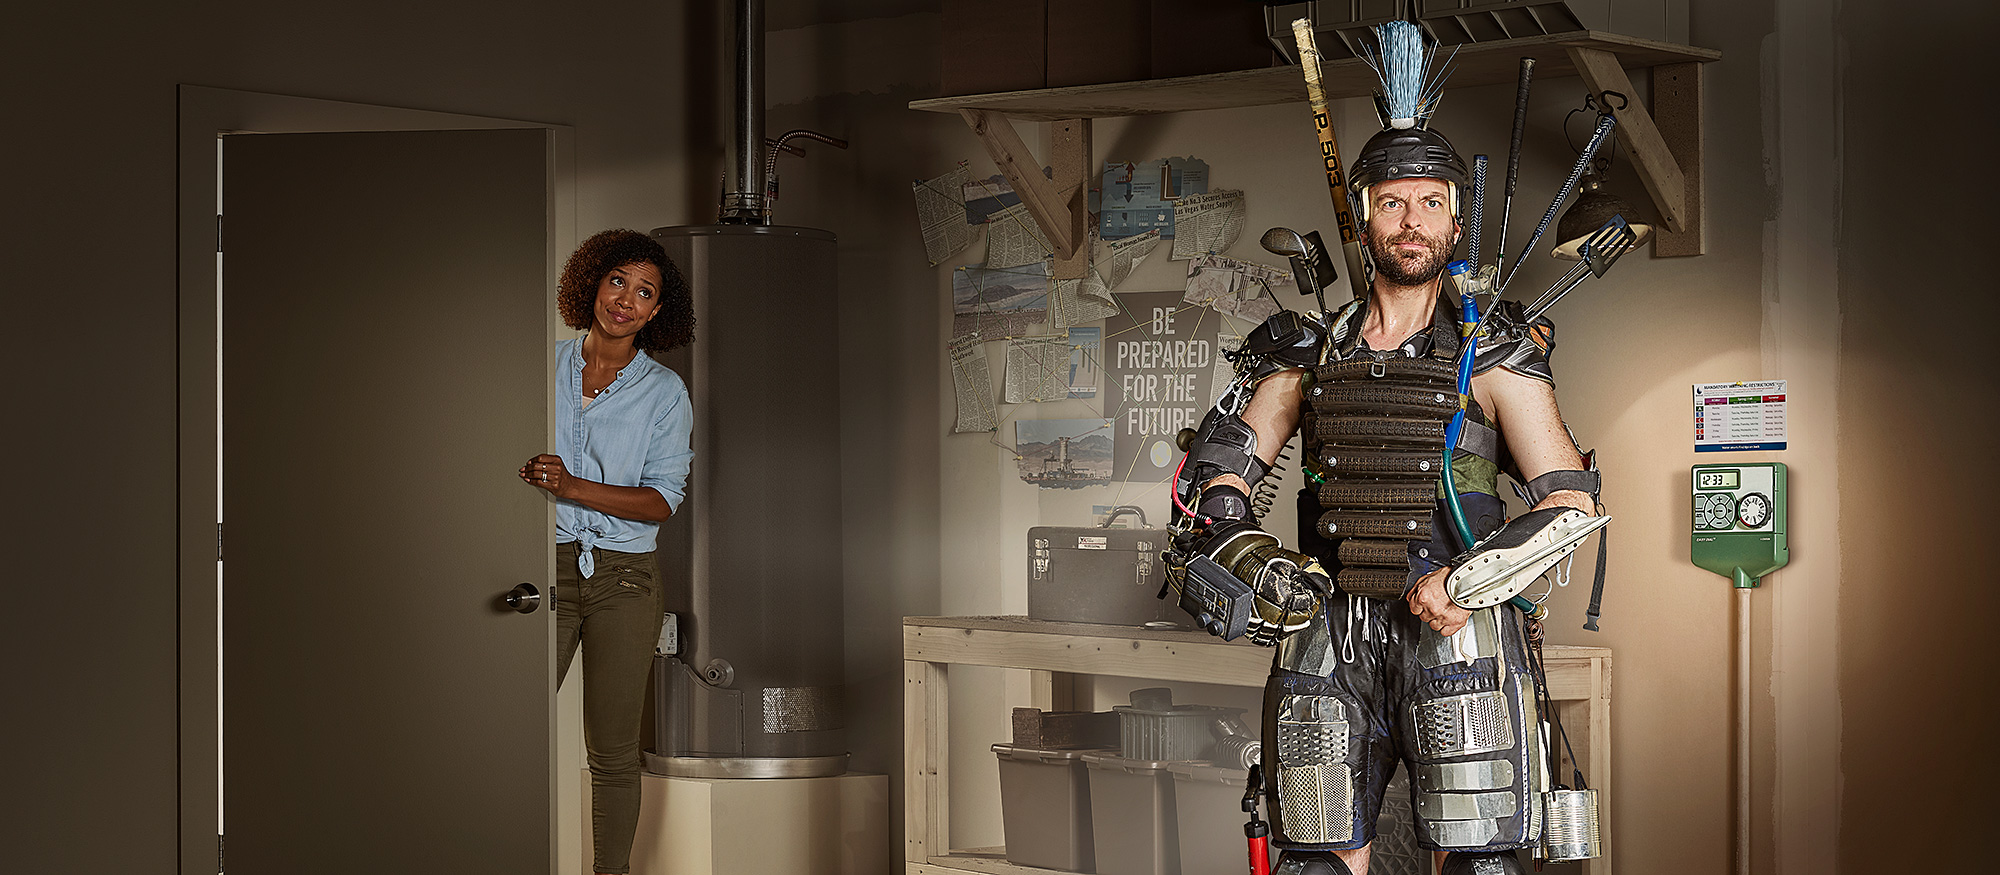 A man stands in his garage in a Mad Max style costume prepared for the future while he wife looks in on him